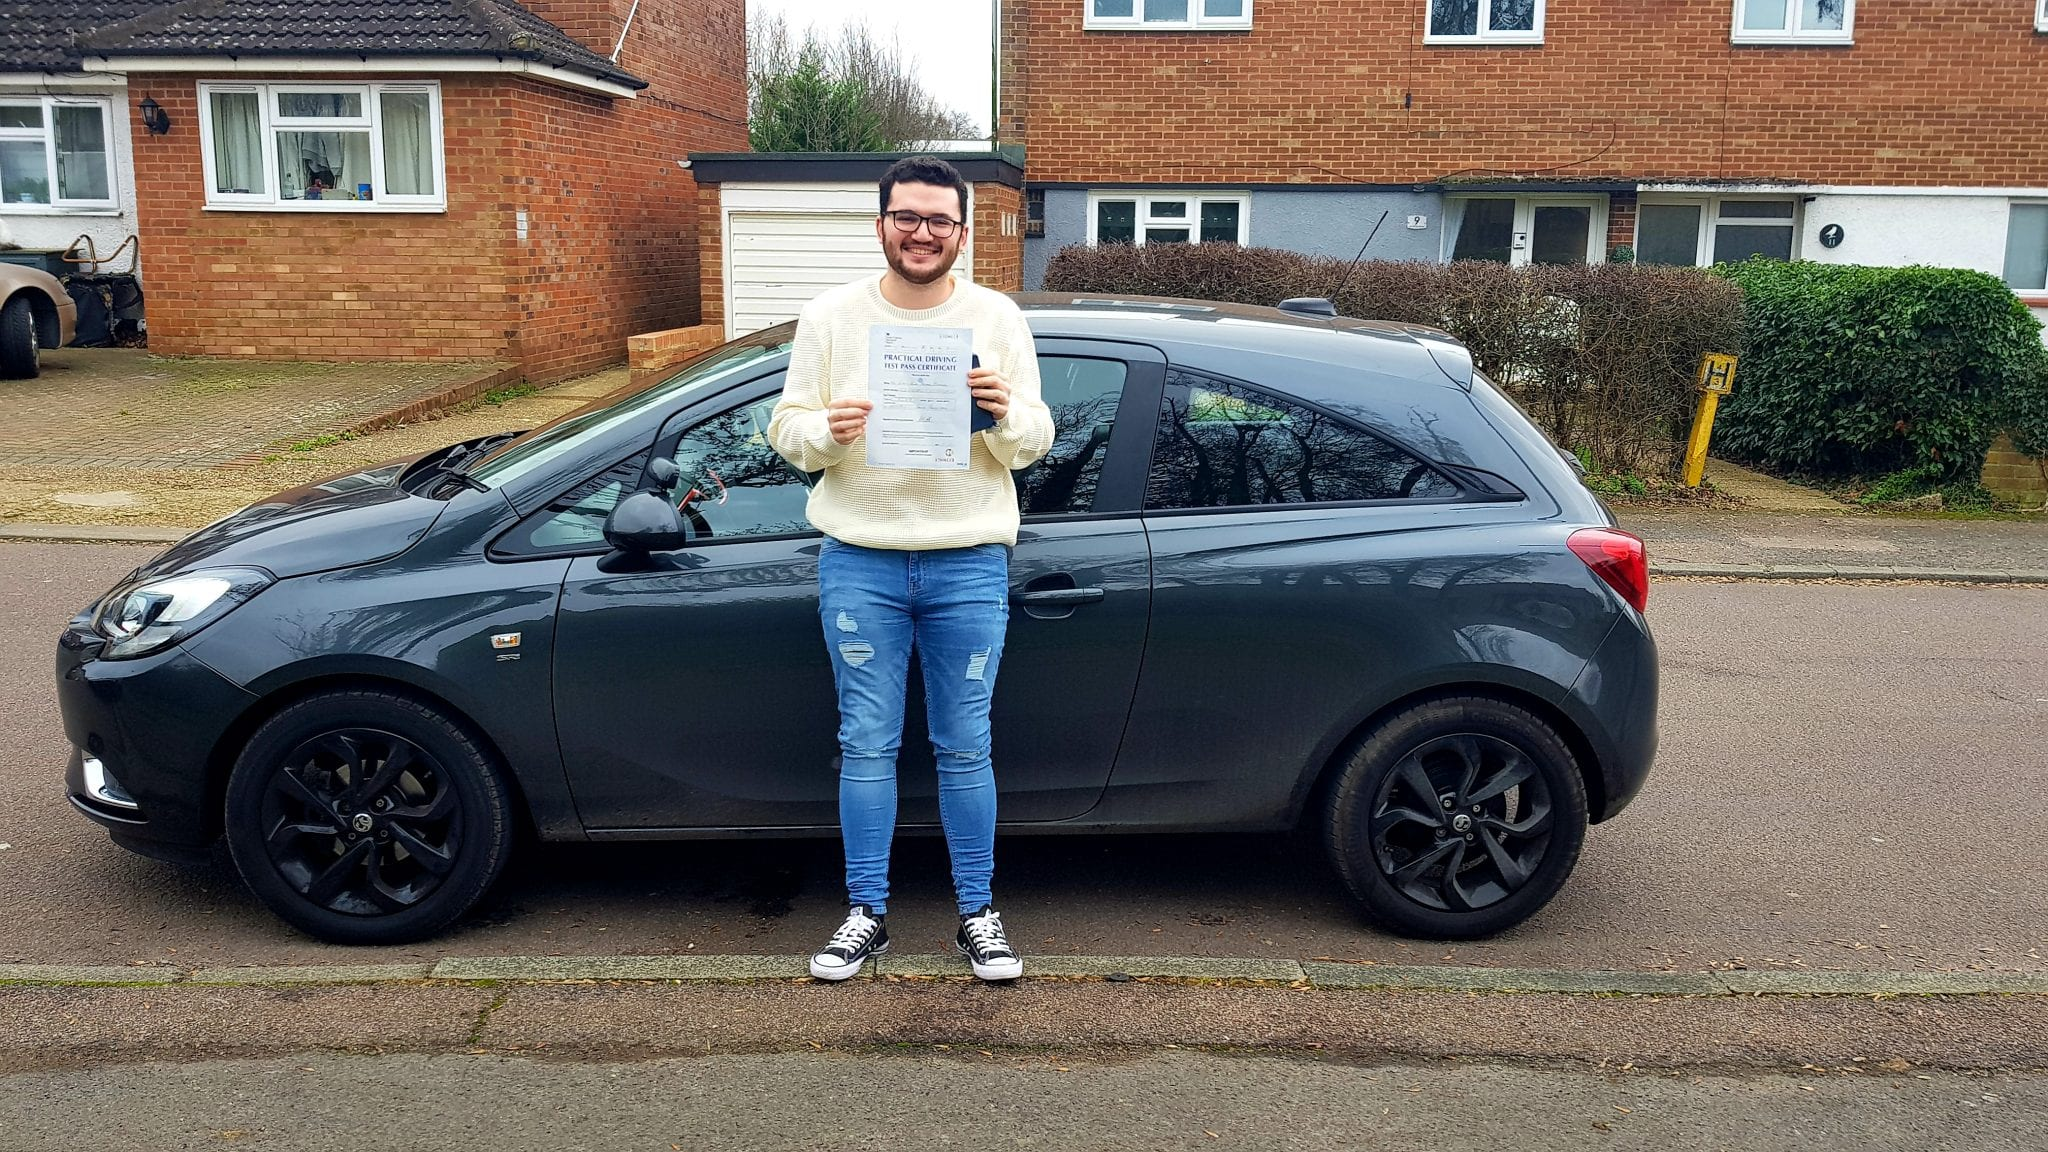 driving lessons in Hemel hempstead